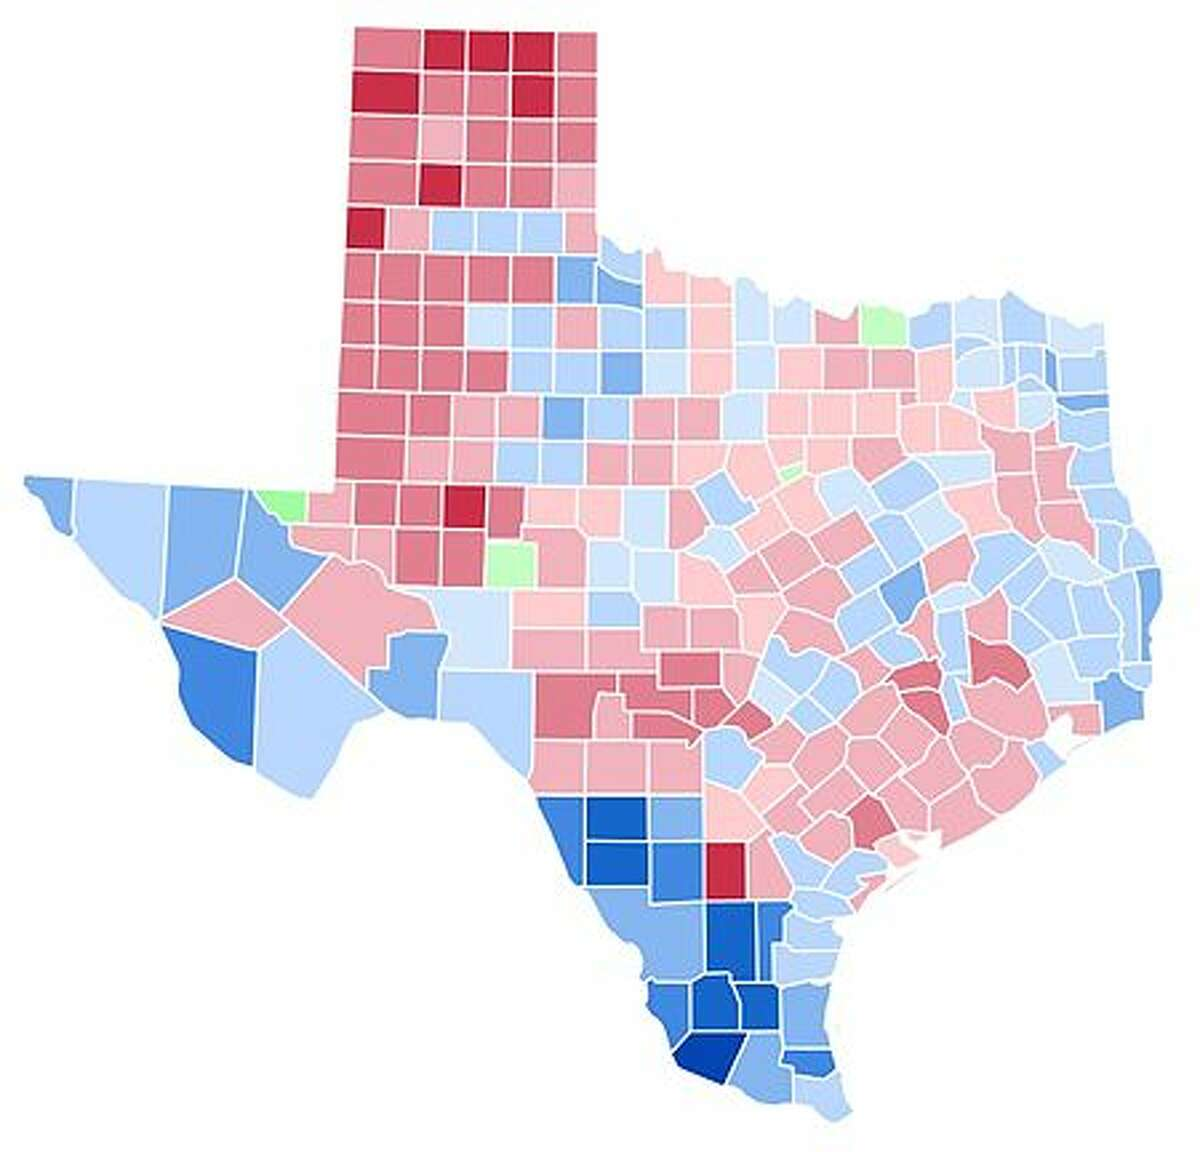 Texas was nearly a split state in the 1992 presidential election. Incumbent George H.W. Bush, a Republican, took 40.5 percent of the vote over Democrat Bill Clinton, who took 37 percent. Independent (and Texan) Ross Perot took 22 percent.